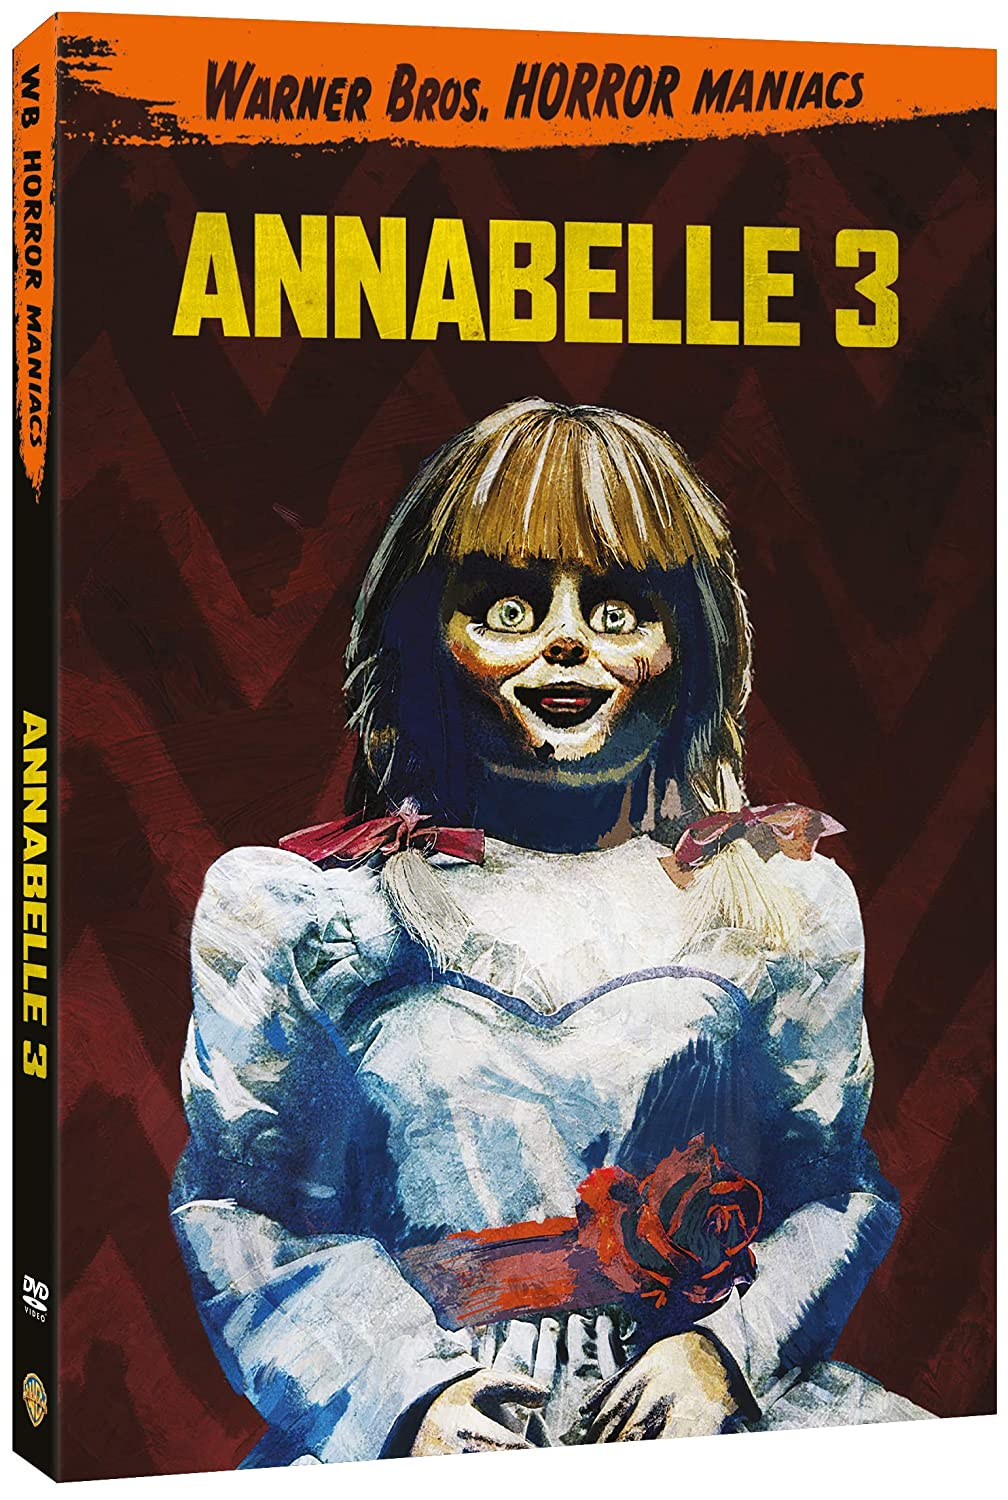 ANNABELLE 3 (HORROR MANIACS COLLECTION) (DVD)